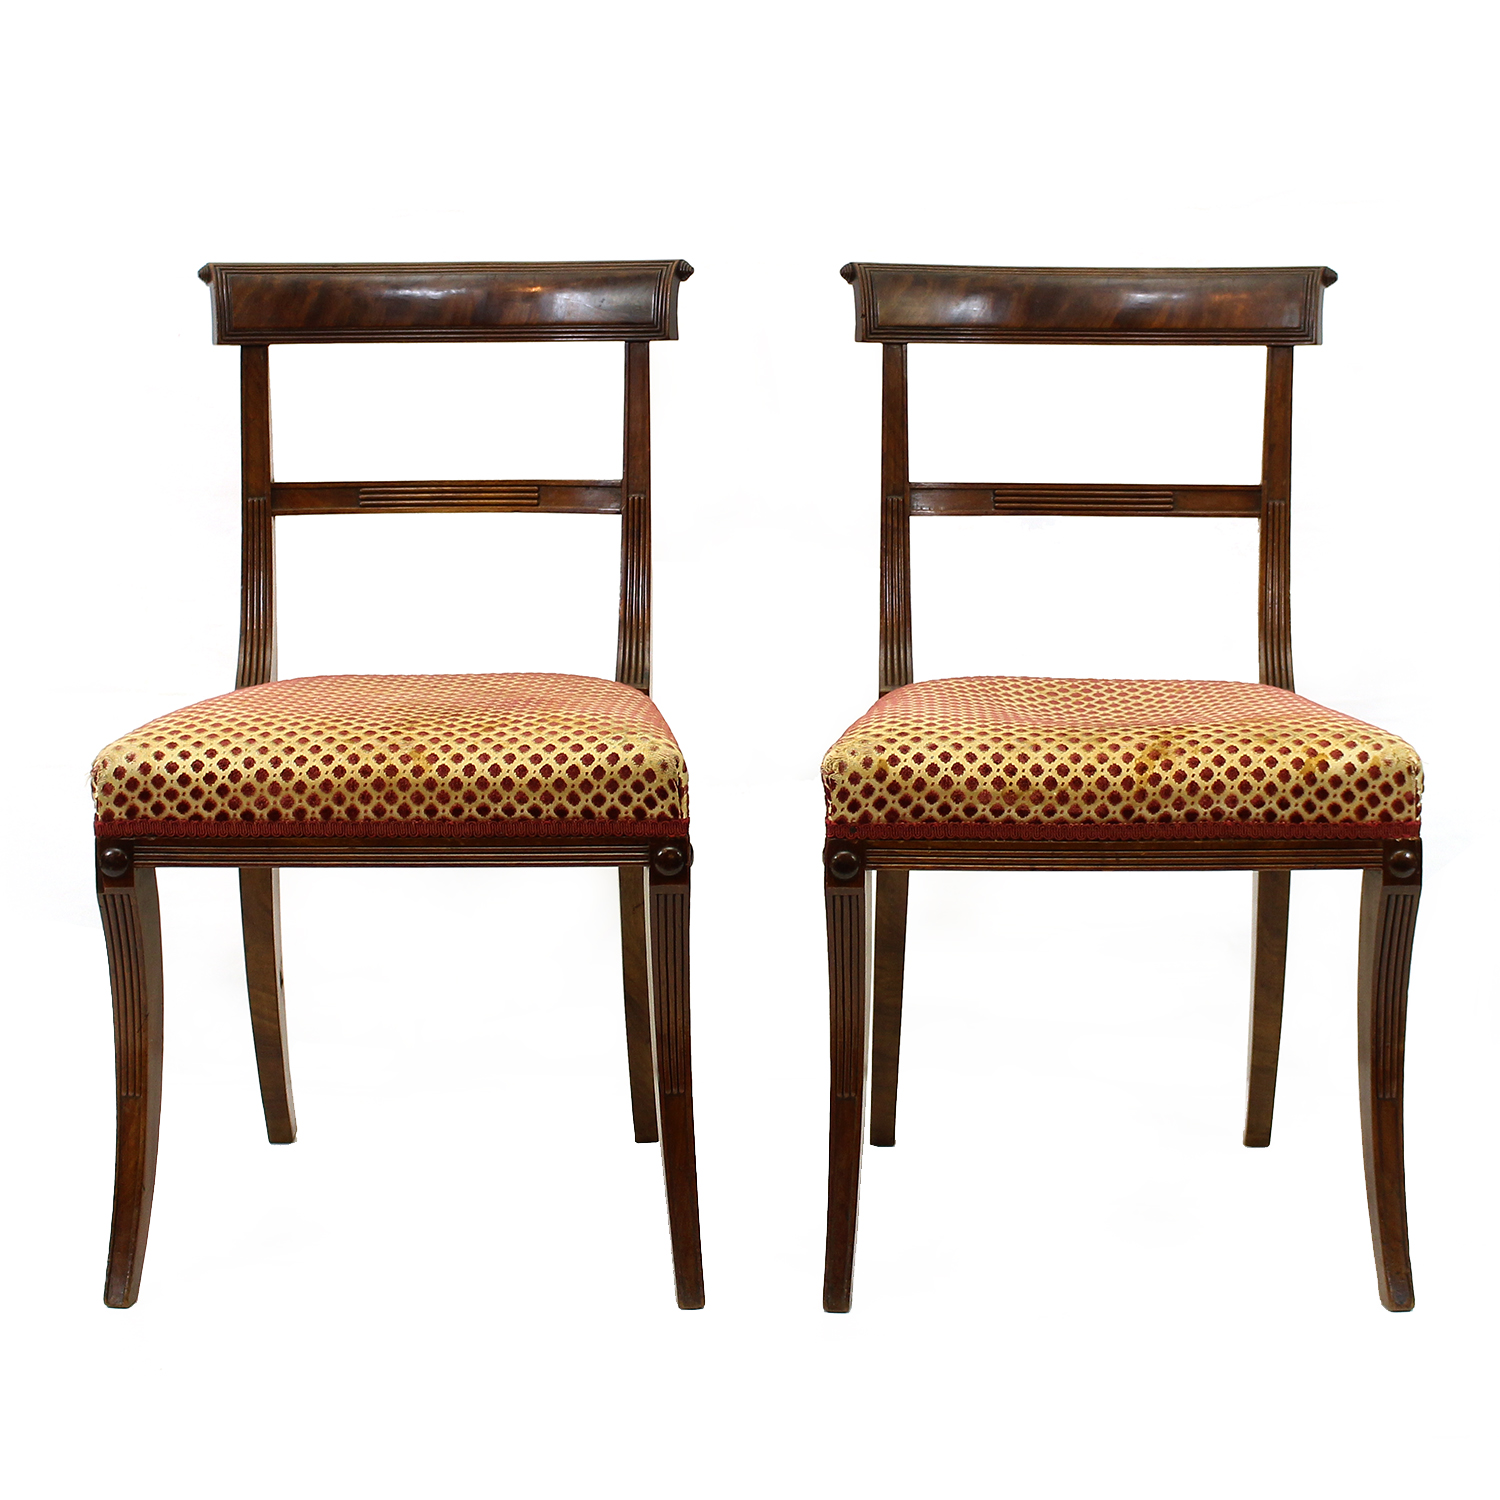 Pair of mahogany Regency side chairs with upholstered seats and sabre legs, English, circa 1840